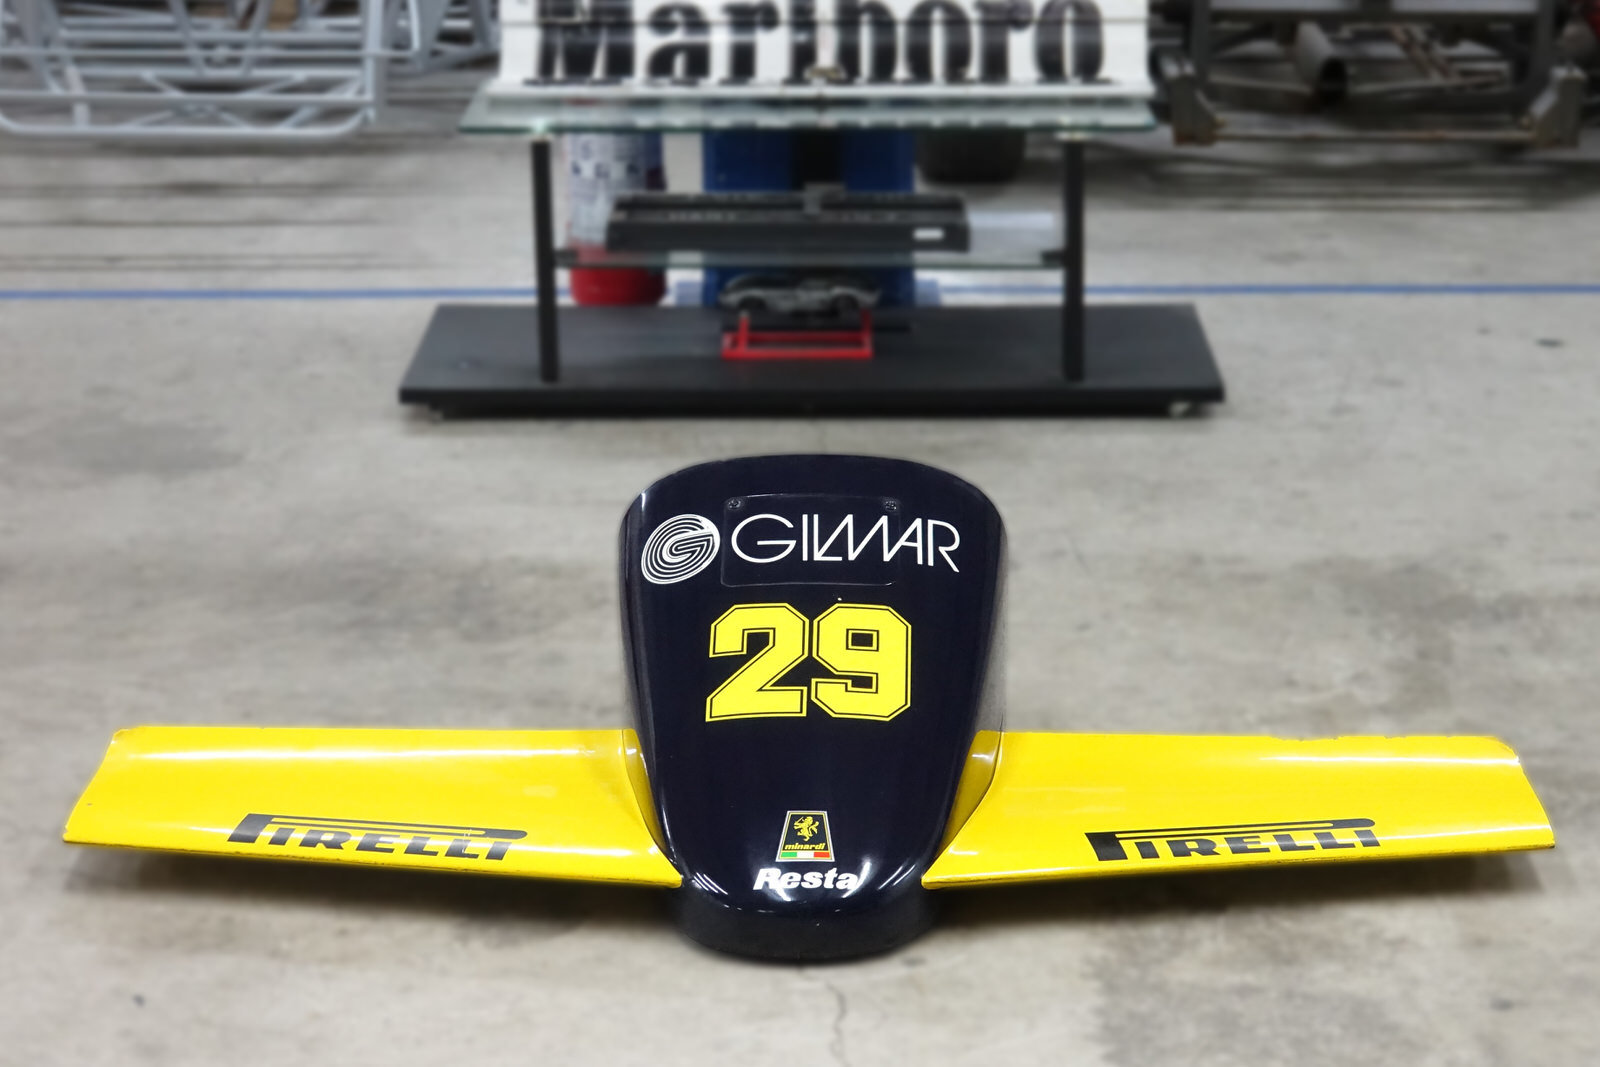 1985 Minardi M185 F1 Front Nose For Sale (picture 6 of 8)